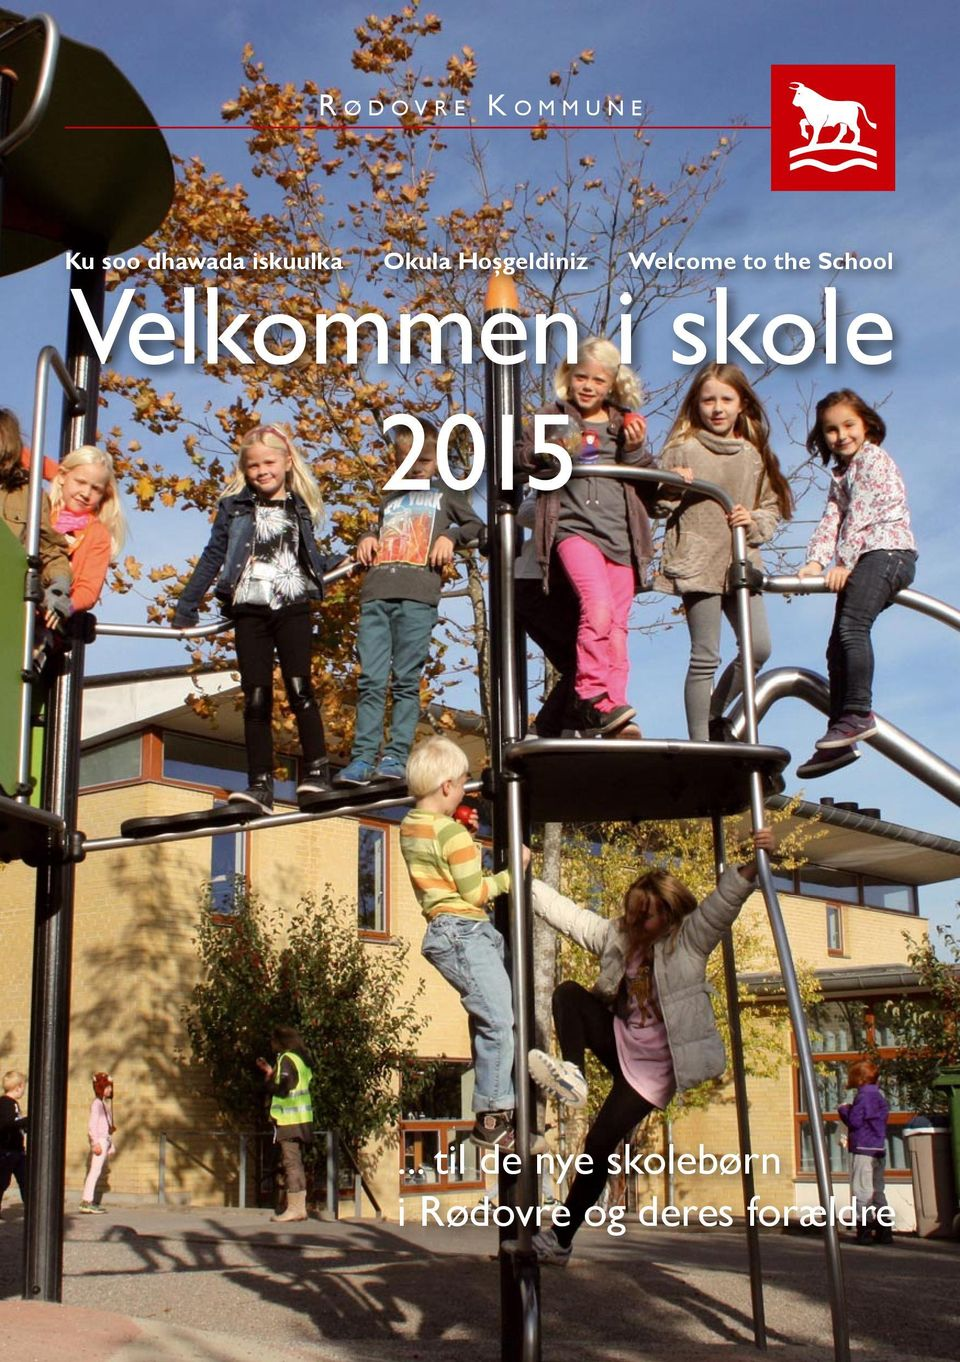 Welcome to the School Velkommen i skole.